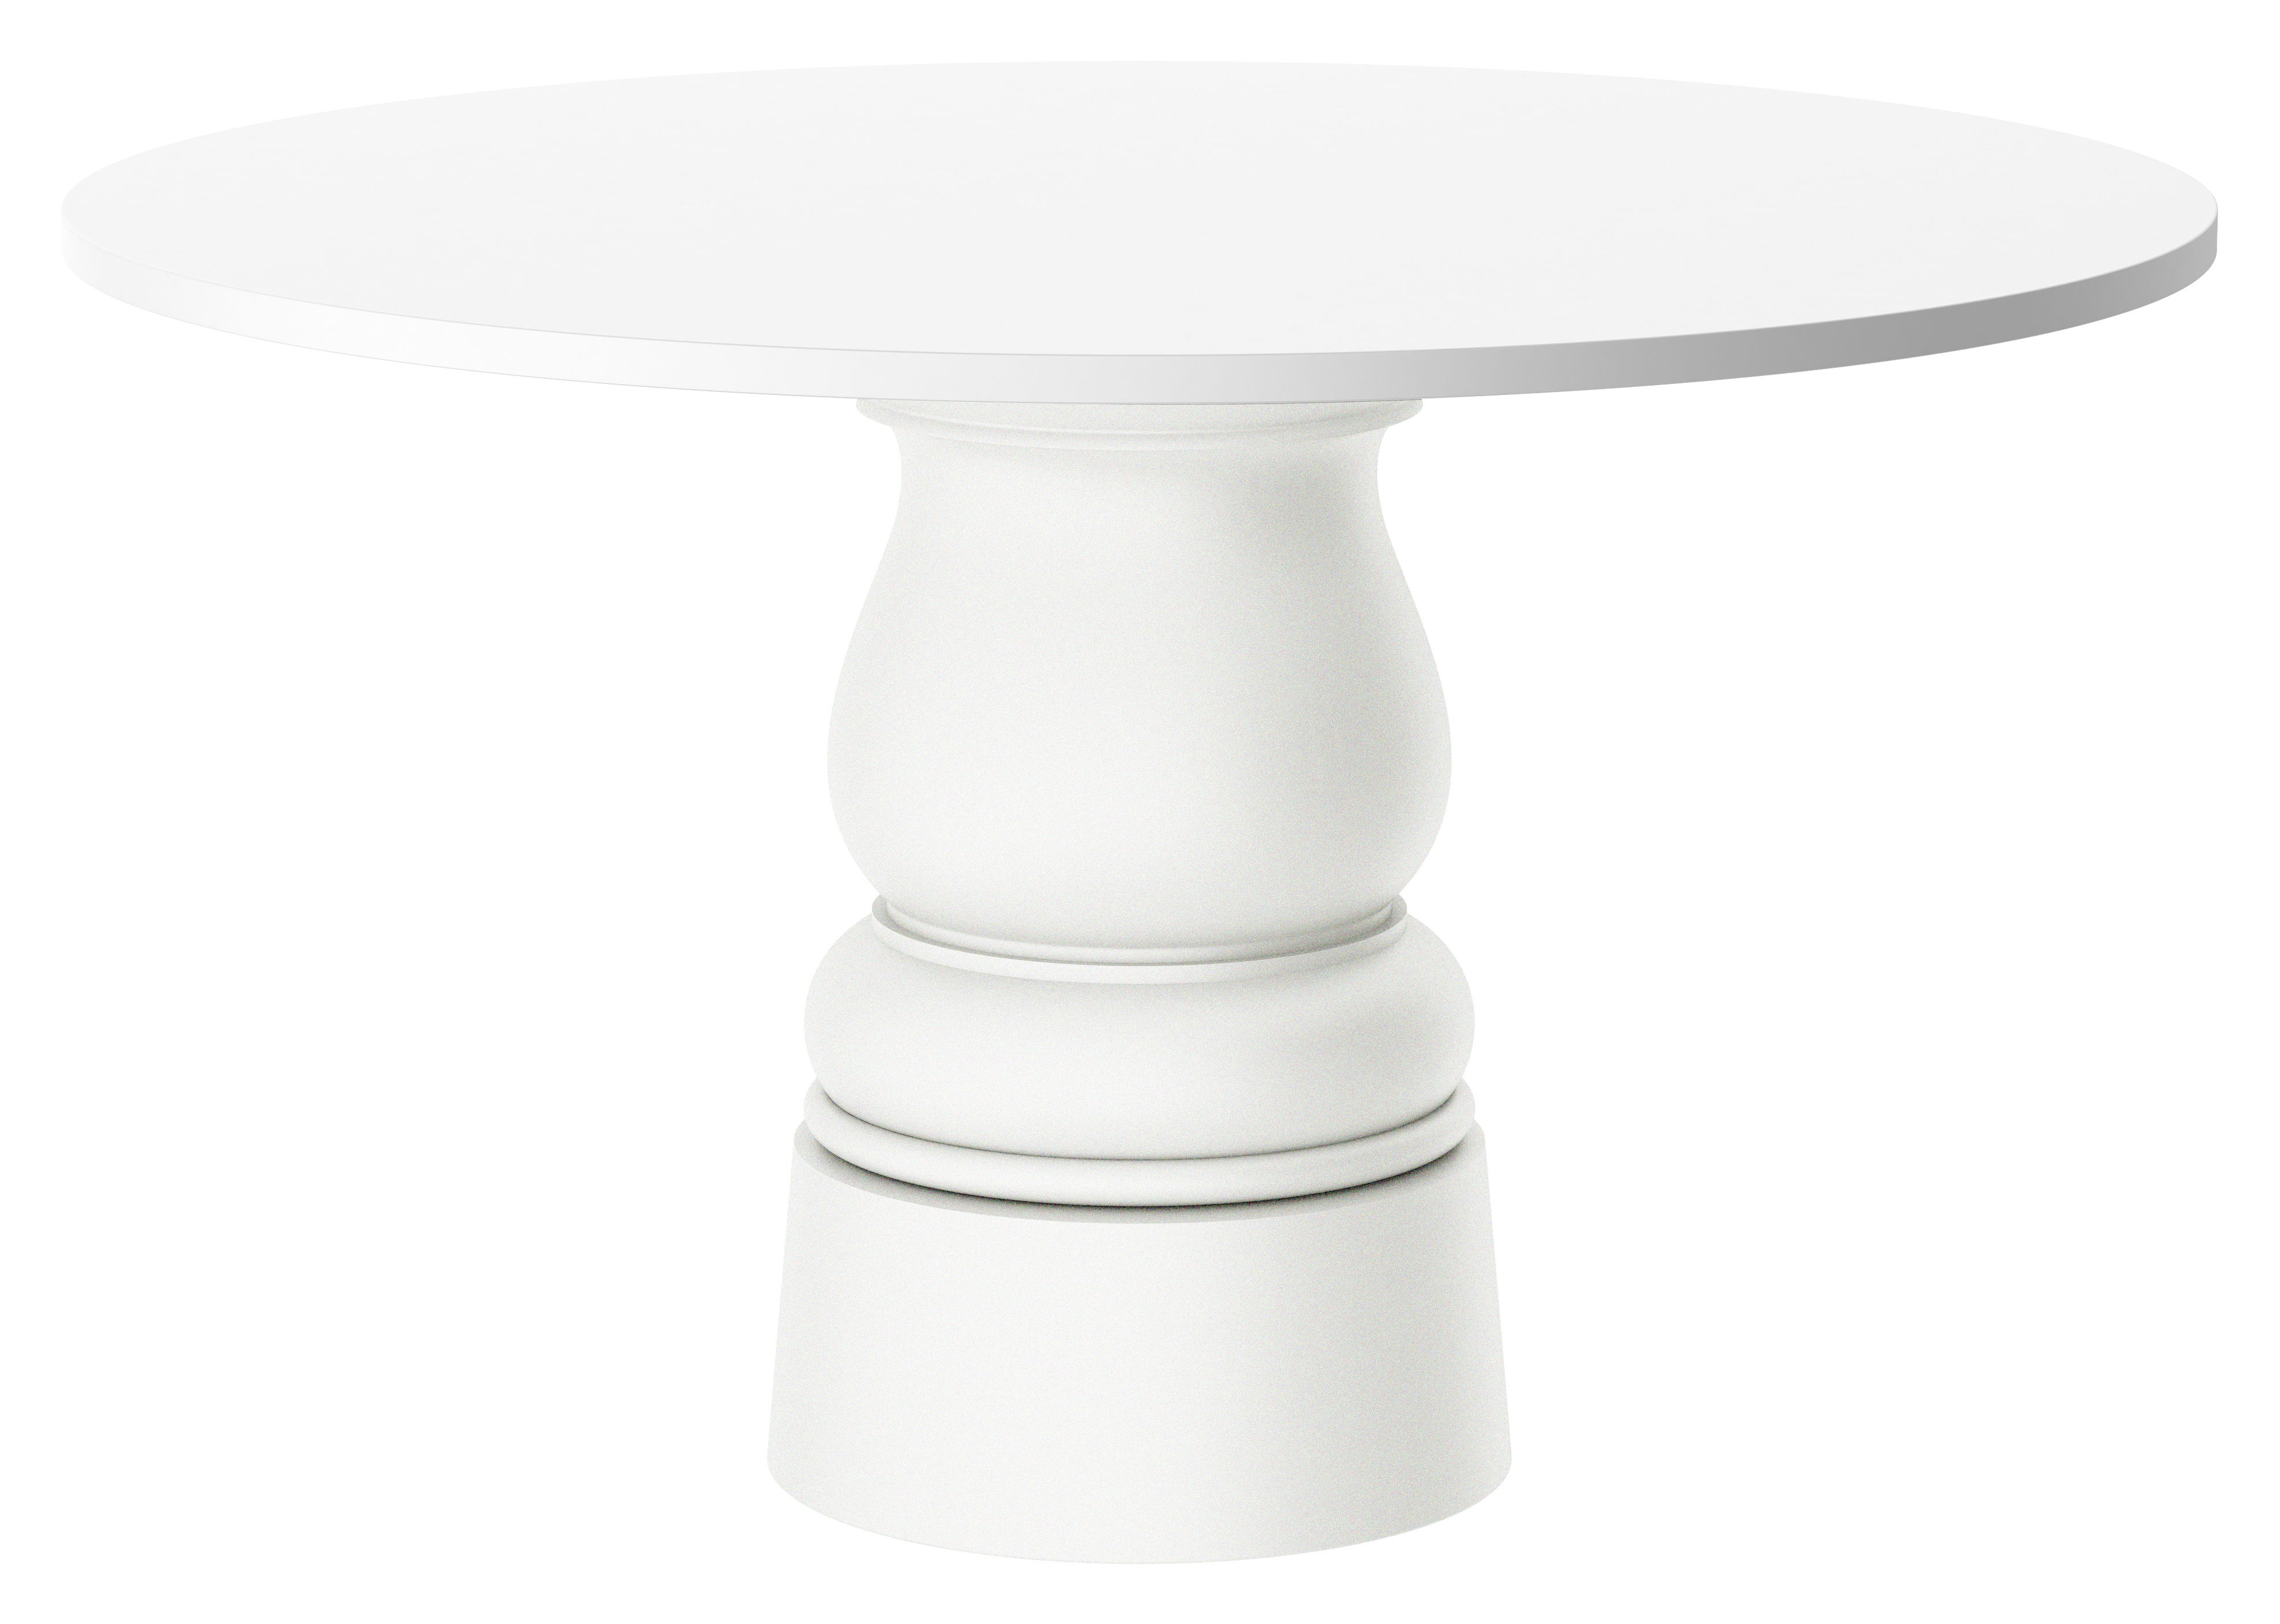 Outdoor - Garden Tables - / Pied pour table Container New Antique Table accessory - Ø 43 x H 71 cm - For top Ø 140 cm by Moooi - H 71 cm x Ø 43 cm - White - Polythene, Stainless steel